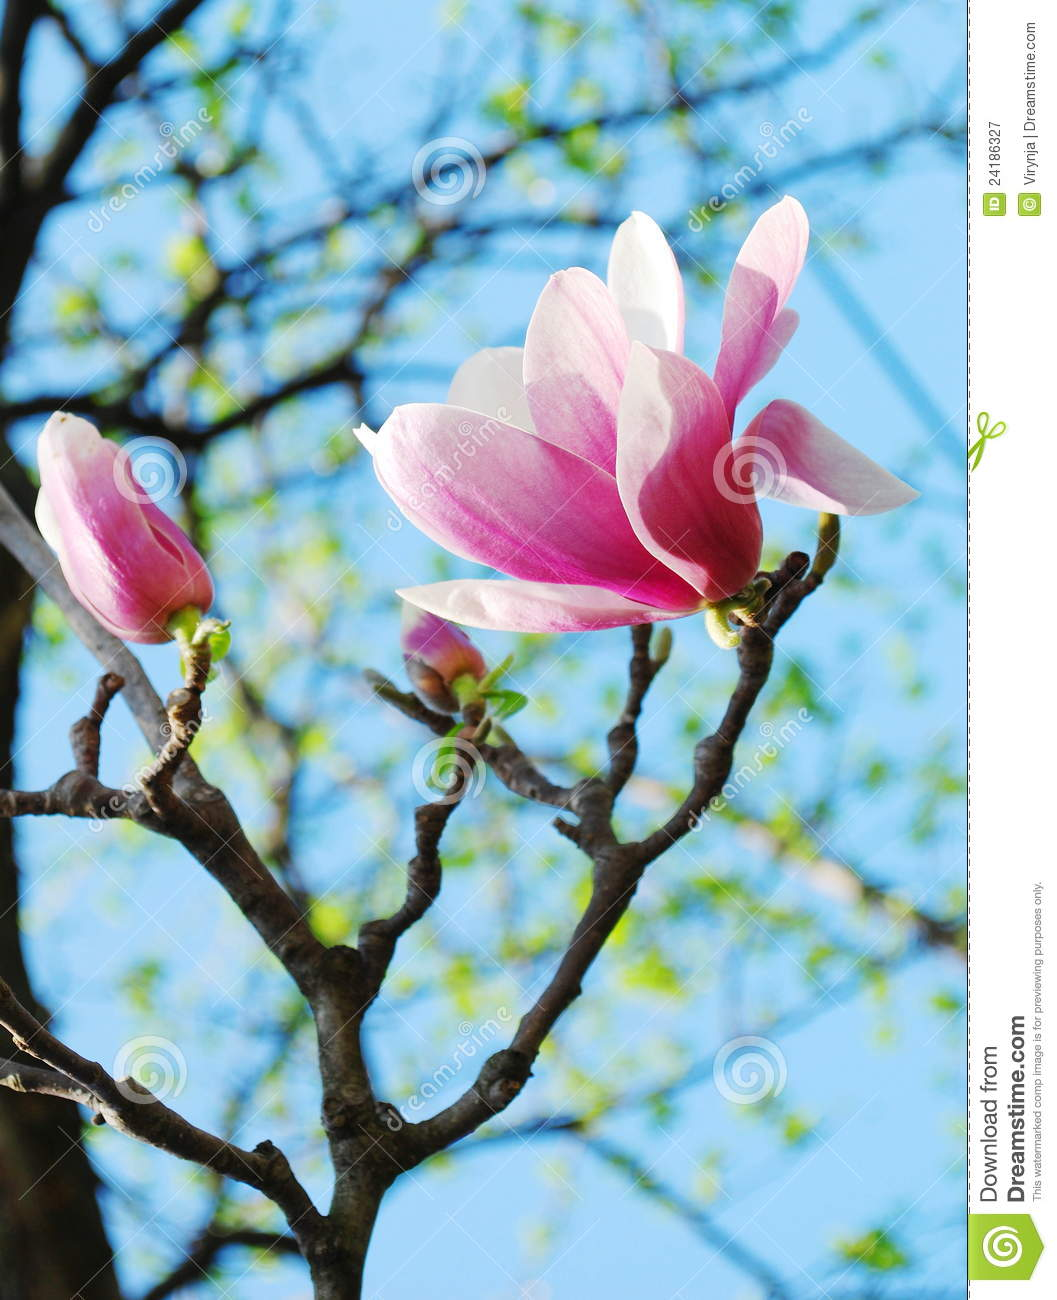 Magnolia Tree Flowers Royalty Free Stock Photography